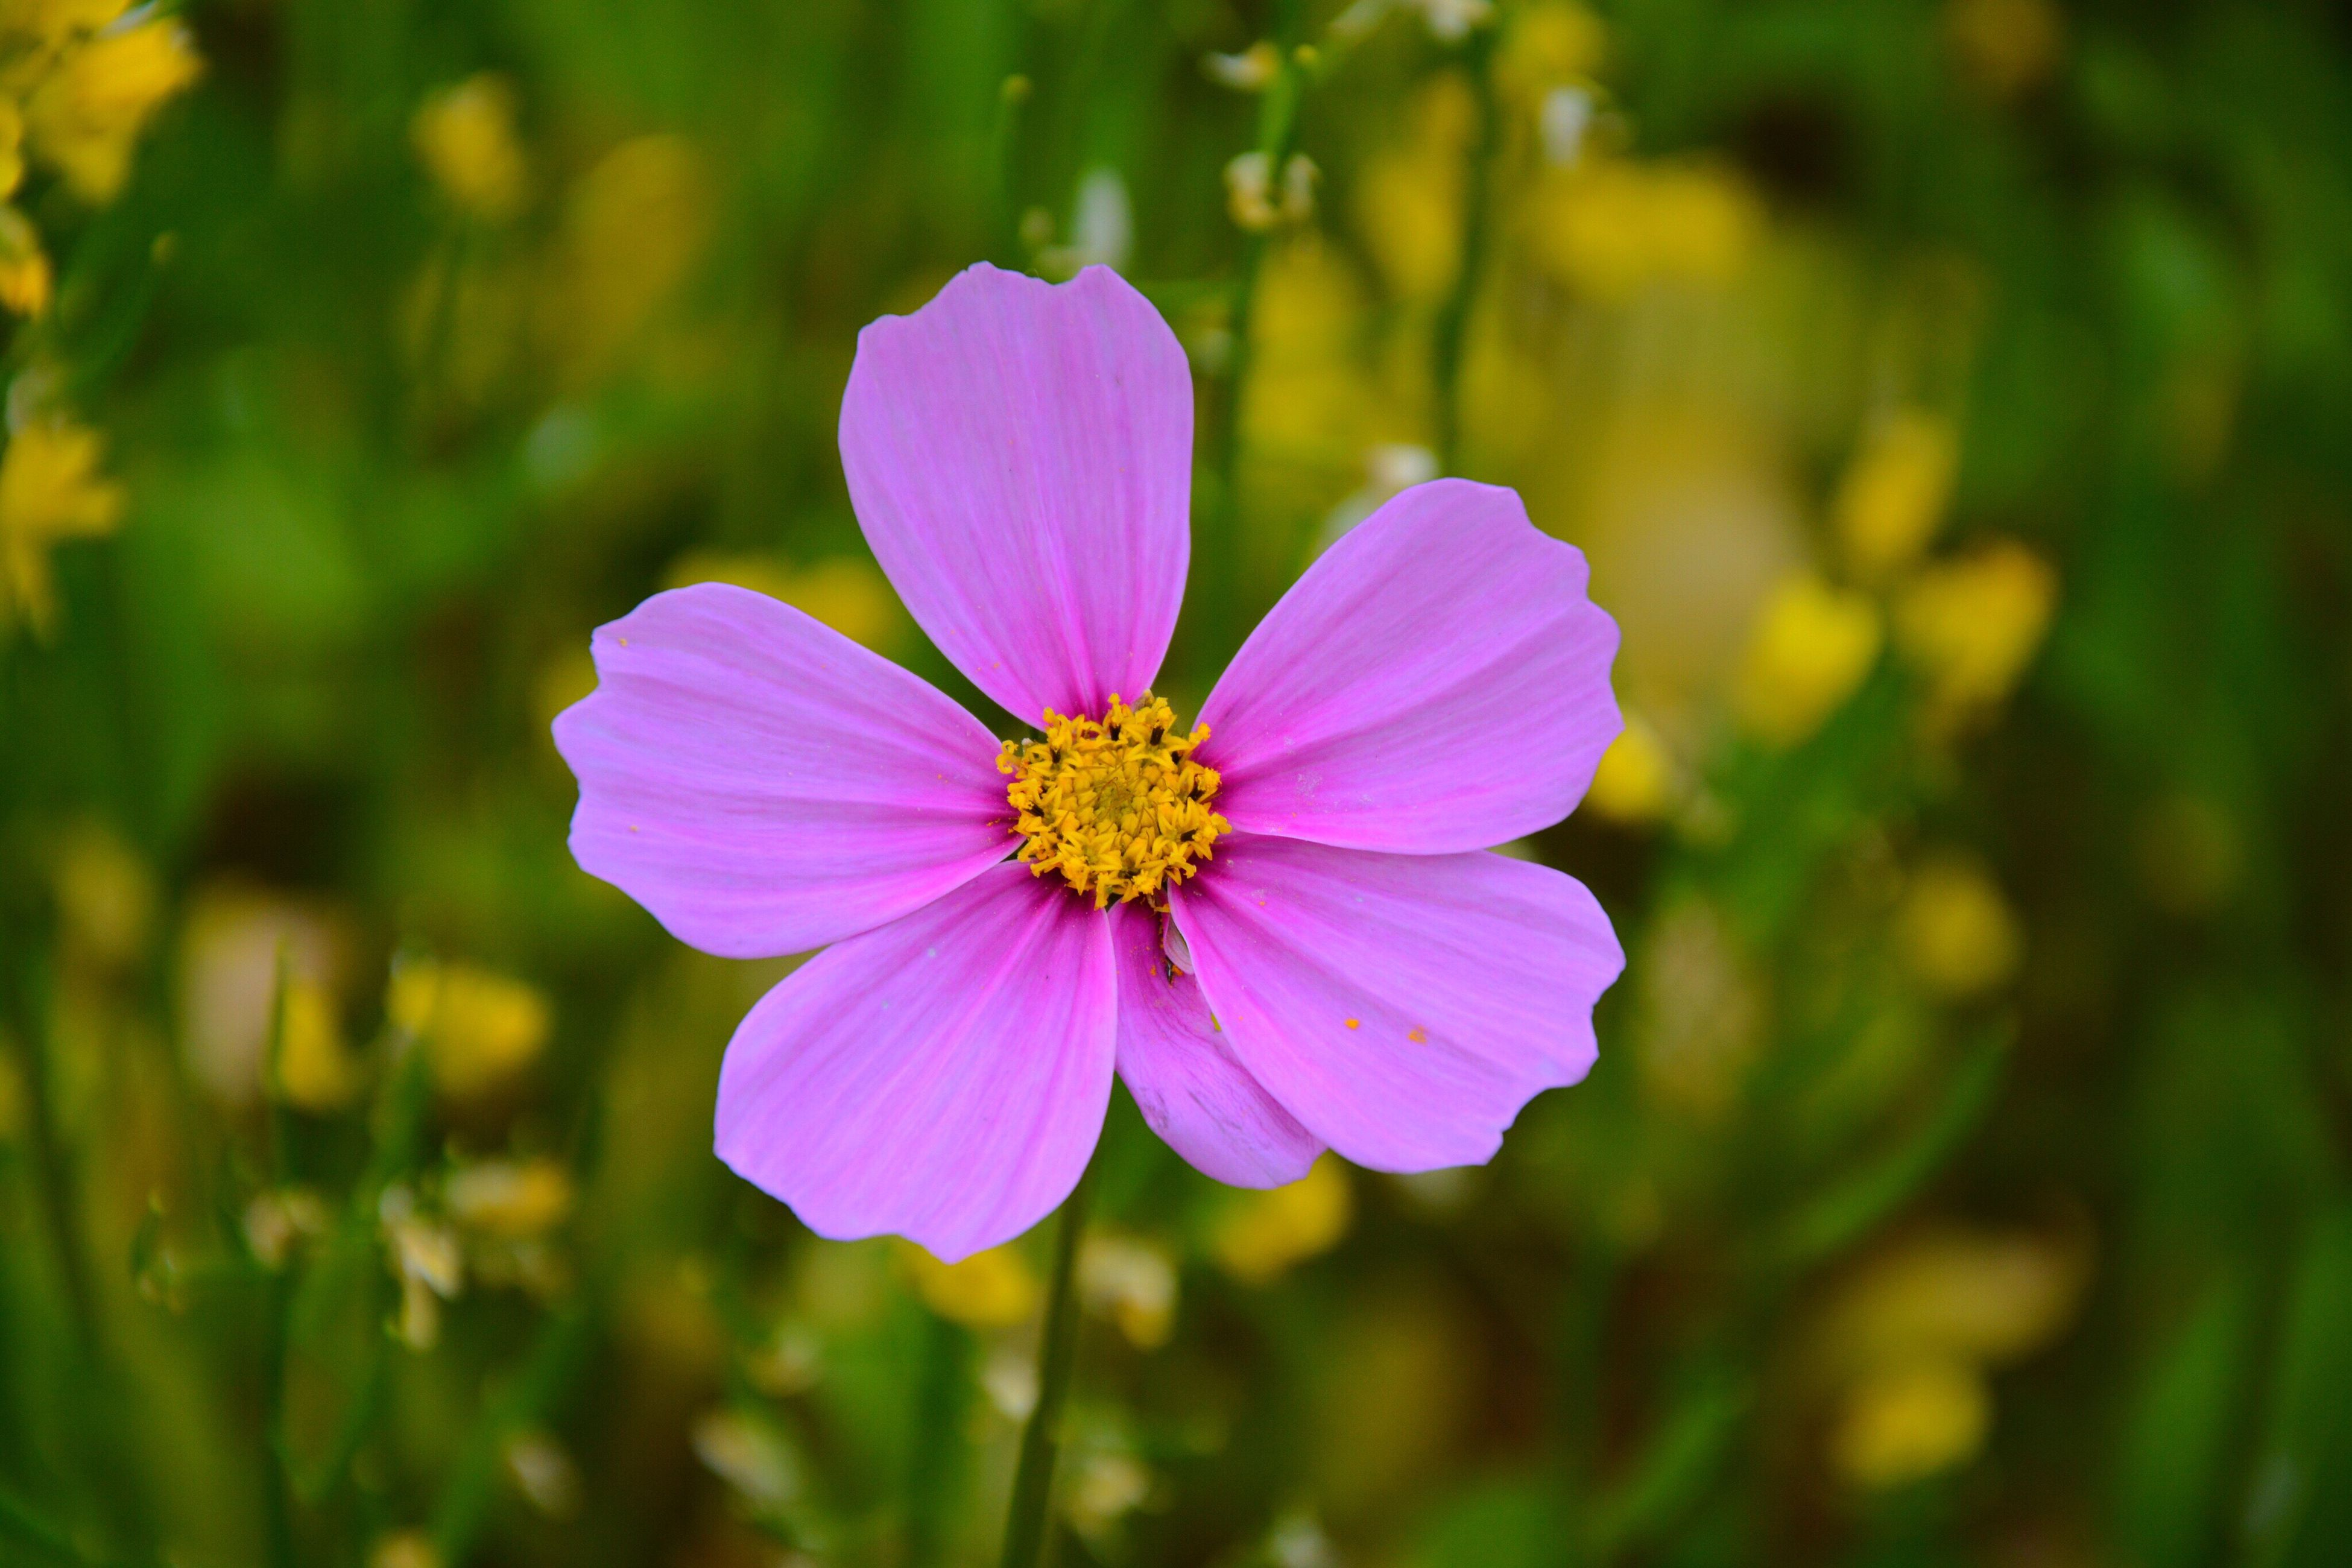 flower, petal, freshness, flower head, fragility, growth, beauty in nature, purple, pollen, focus on foreground, blooming, close-up, single flower, nature, pink color, in bloom, plant, stamen, blossom, day